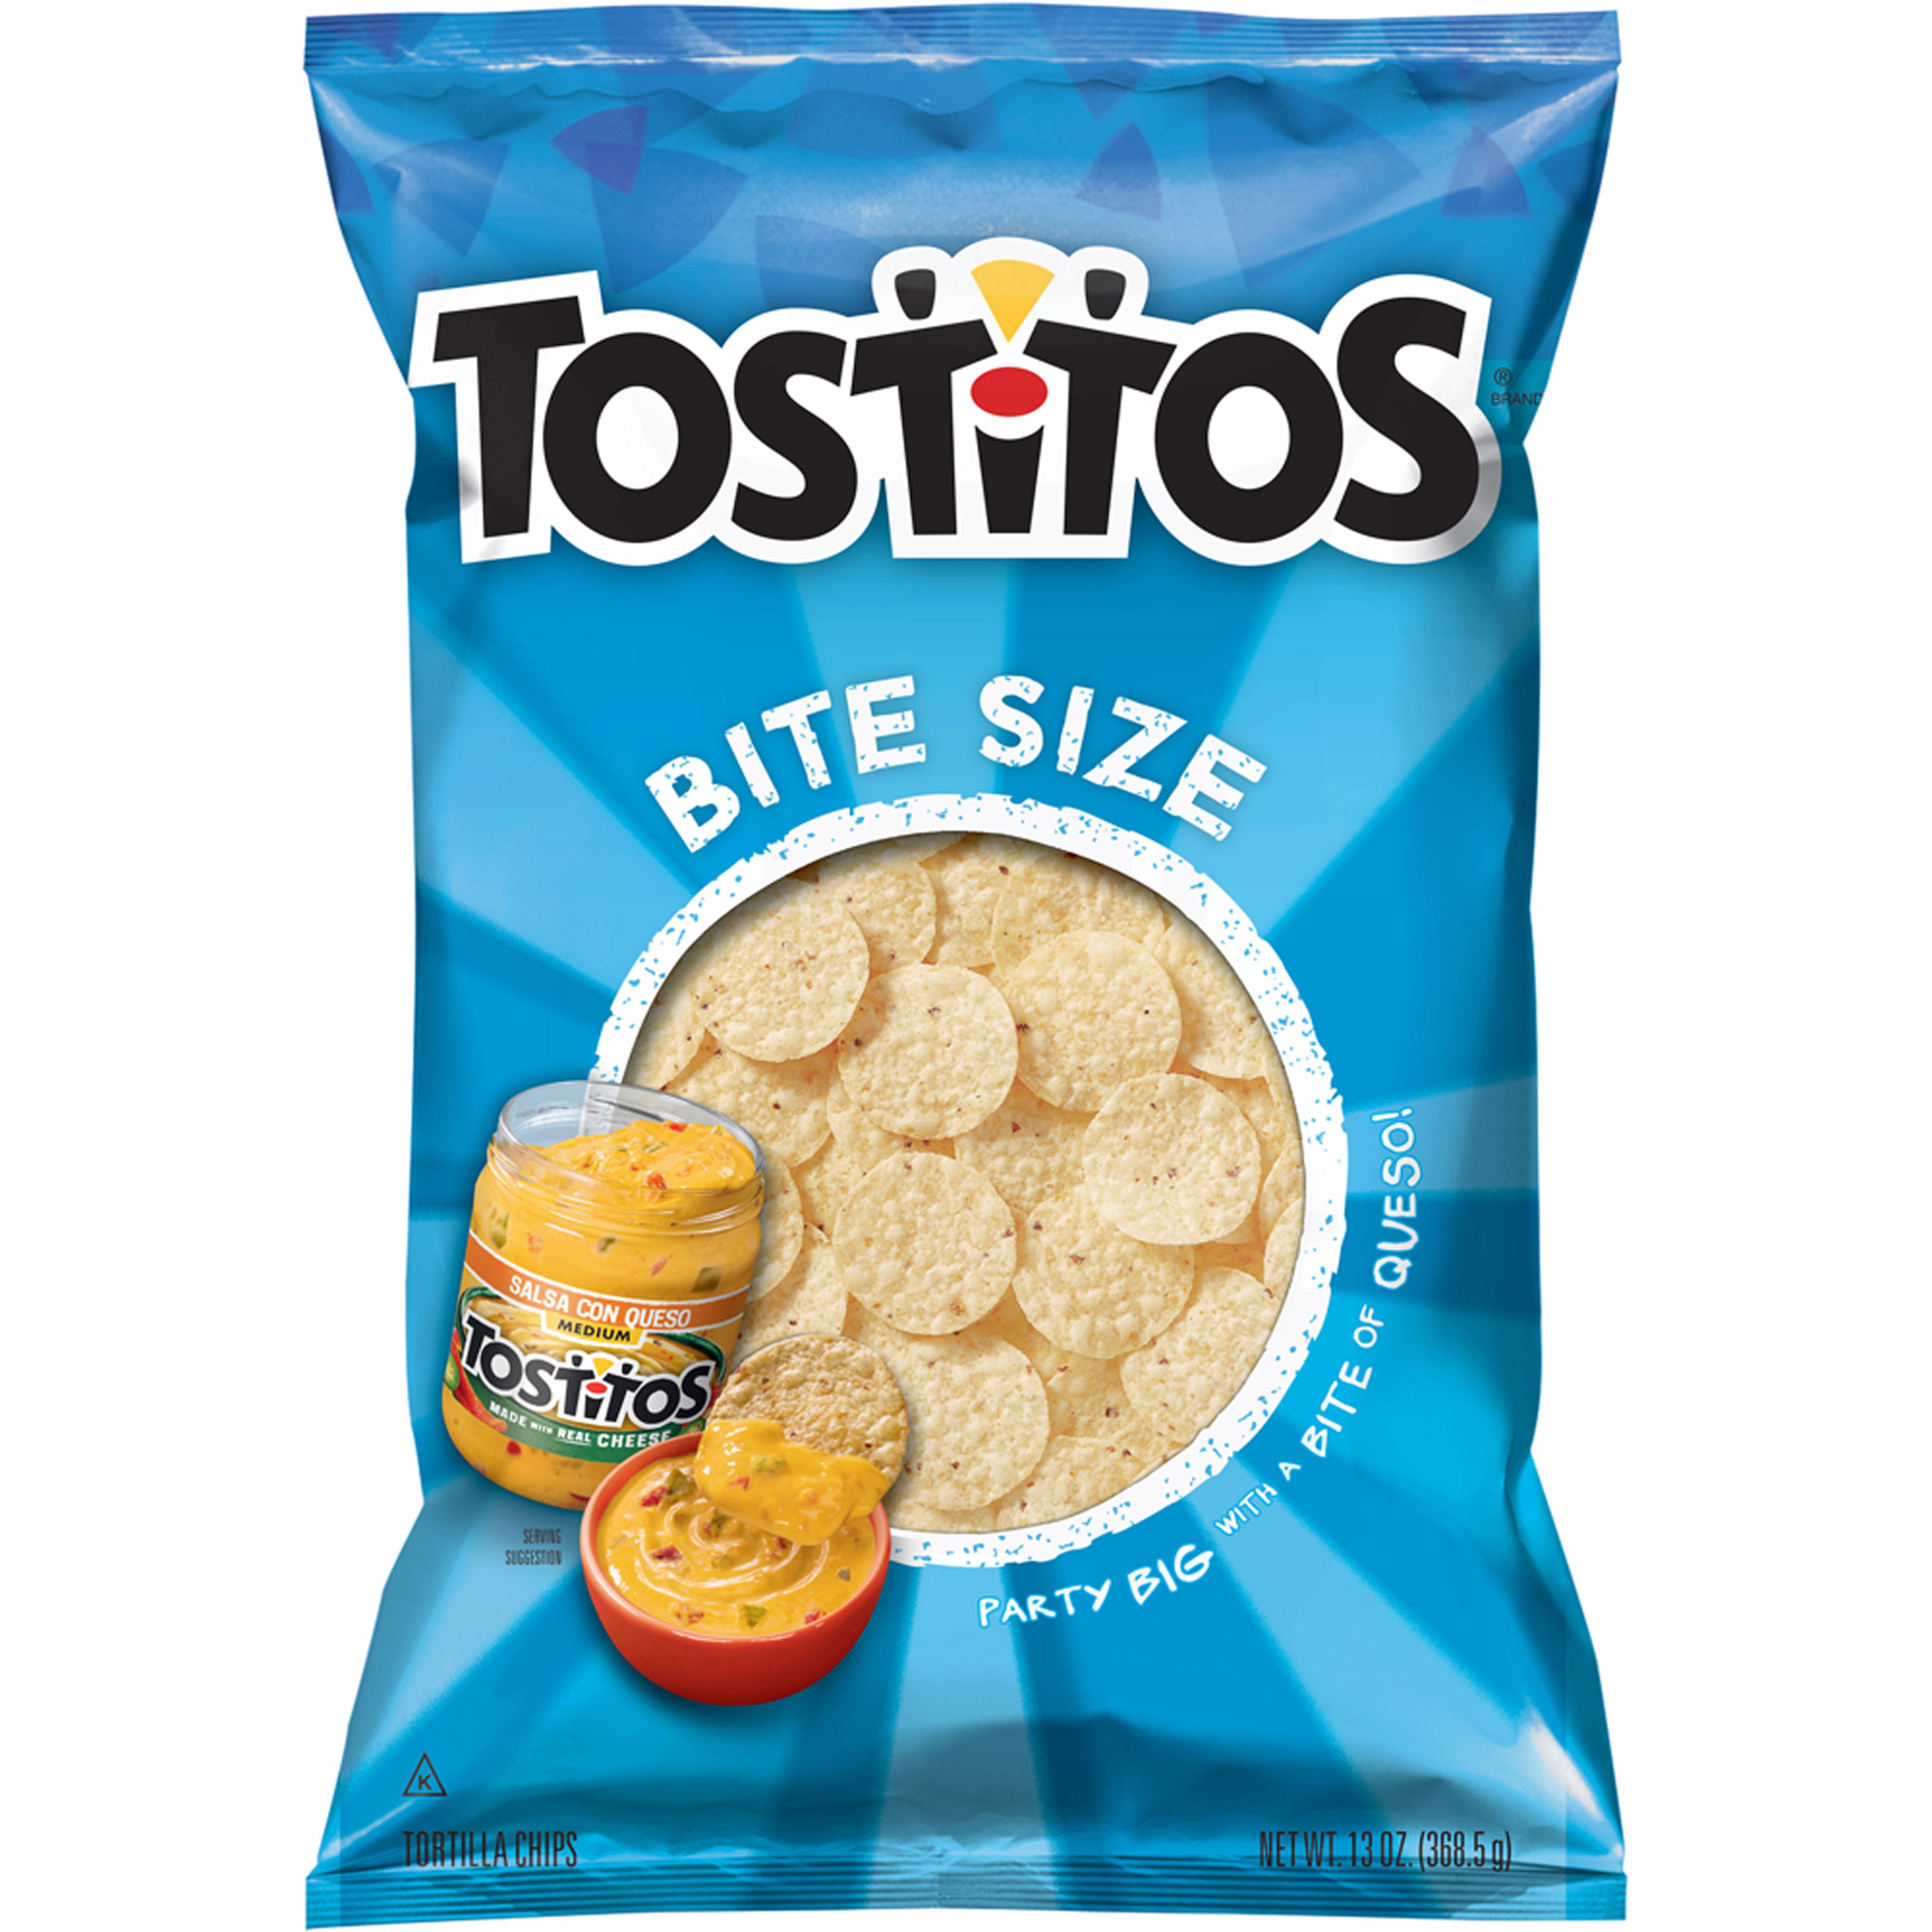 Tostitos Bite Size Rounds Tortilla Chips, 13 oz.